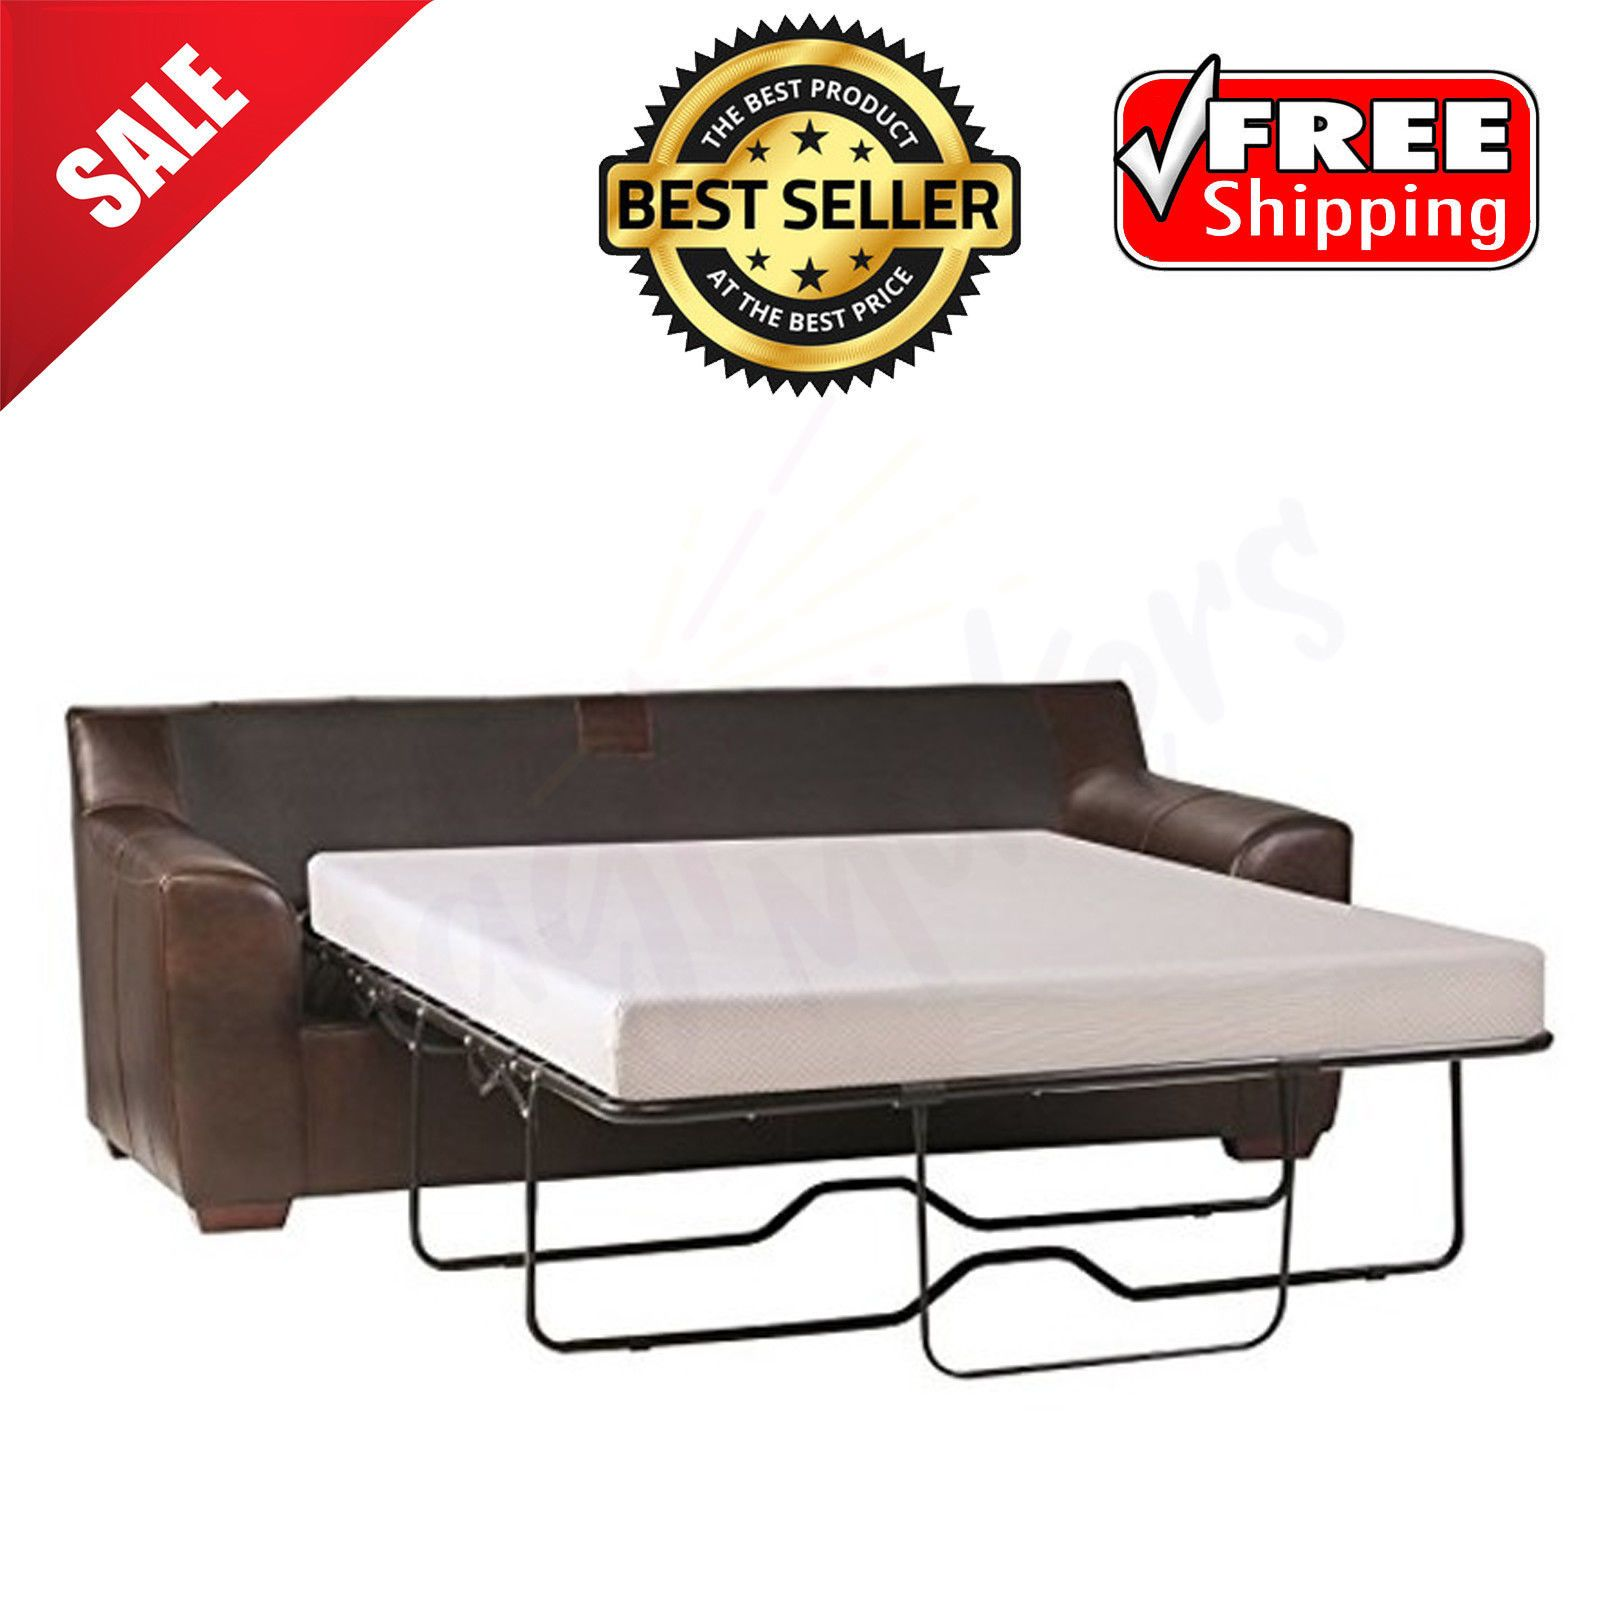 Sleep Master Cool Gel Memory Foam 5 Sleeper Sofa Mattress